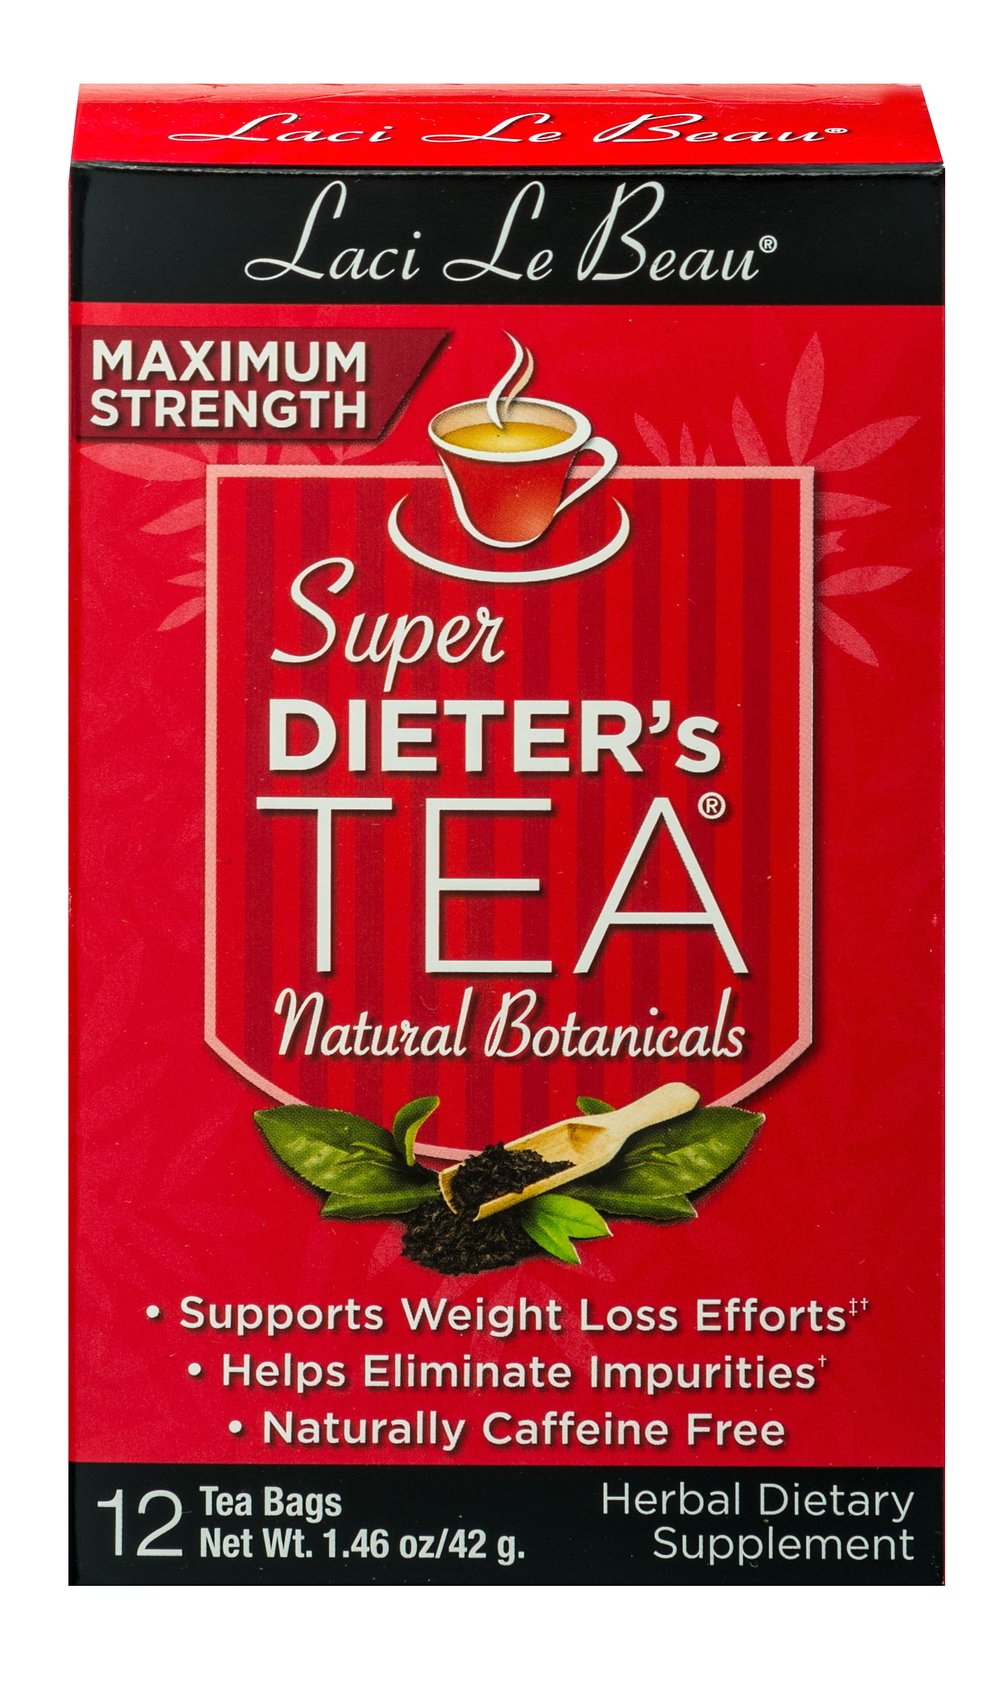 Super Dieter's Tea Maximum Strength <p><strong>From the Manufacturer's Label: </strong></p><p><strong>Caffeine Free </strong></p><p>Super Dieter's Teas offer a delicious alternative that has been helping people across the  nation. Maximum Strength Teas ca assist those of you who need an extra boost from regular Super Dieter's Formula. Formed with natural botanicals, enjoy this delicious tea any time you want!<br /></p